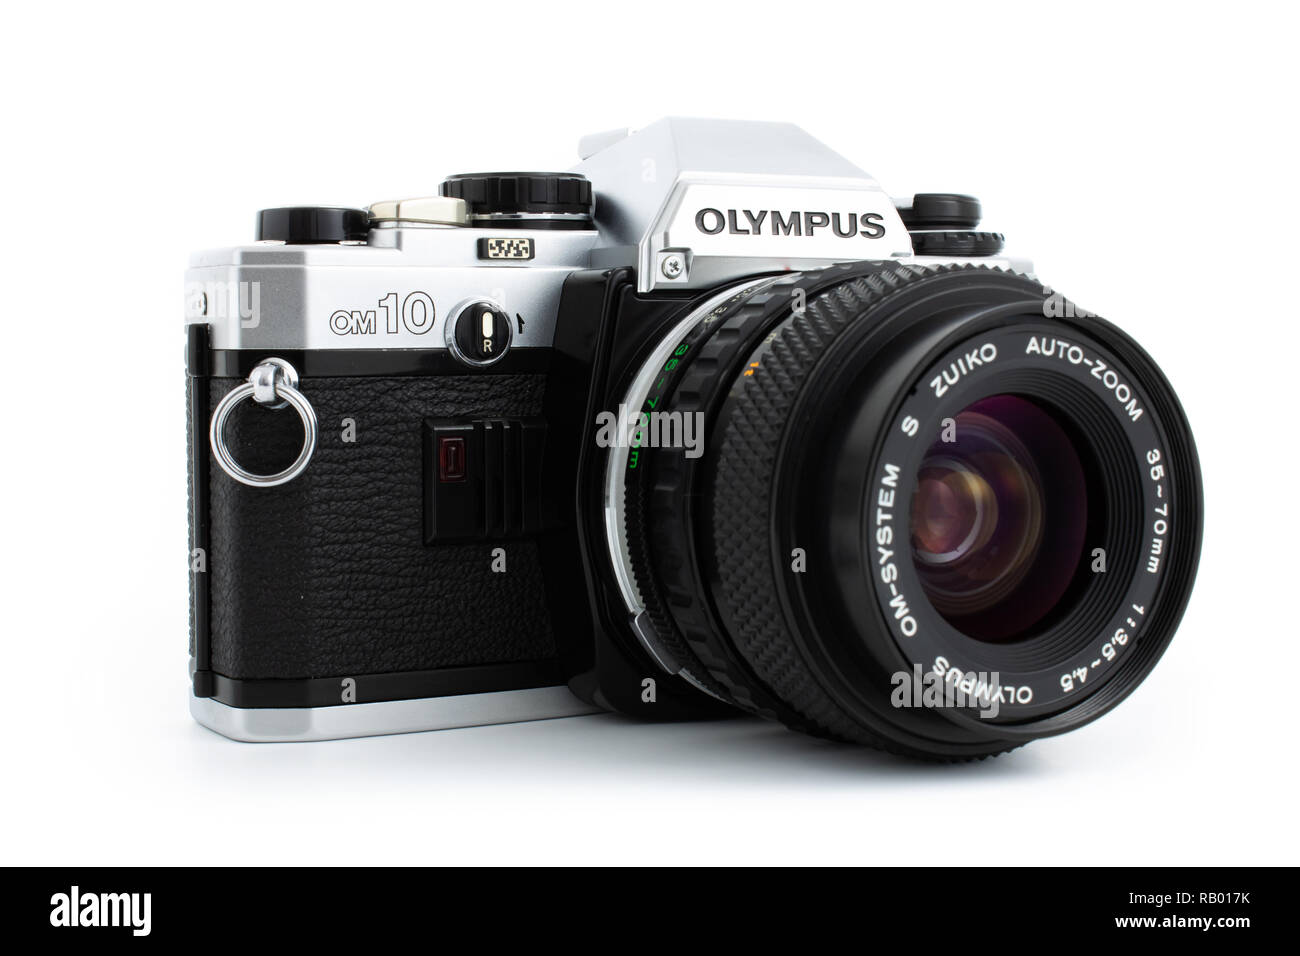 Prague, CZECH REPUBLIC - JANUARY 02, 2019: Olympus OM-10 is a 35mm film camera, launched by Olympus Corporation in June 1979, laid on white background - Stock Image